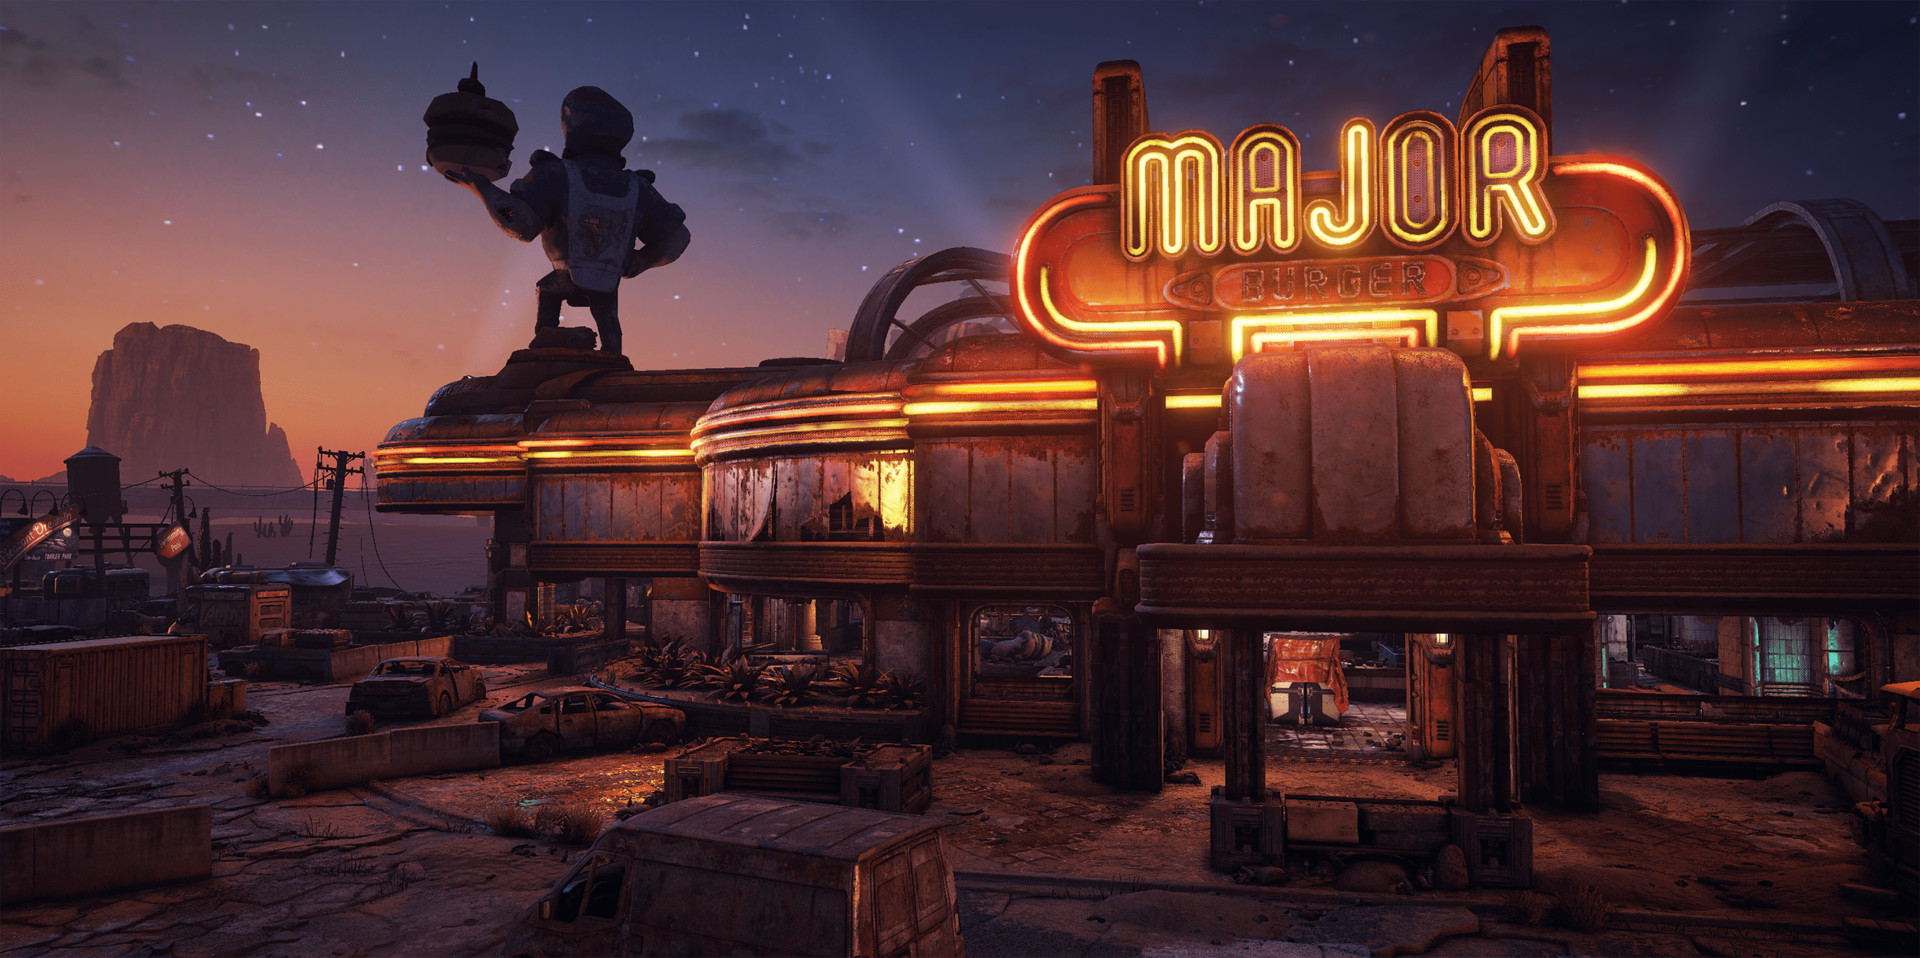 *Responsible for Mascot and part of the diner external meshes, materials, and textures.